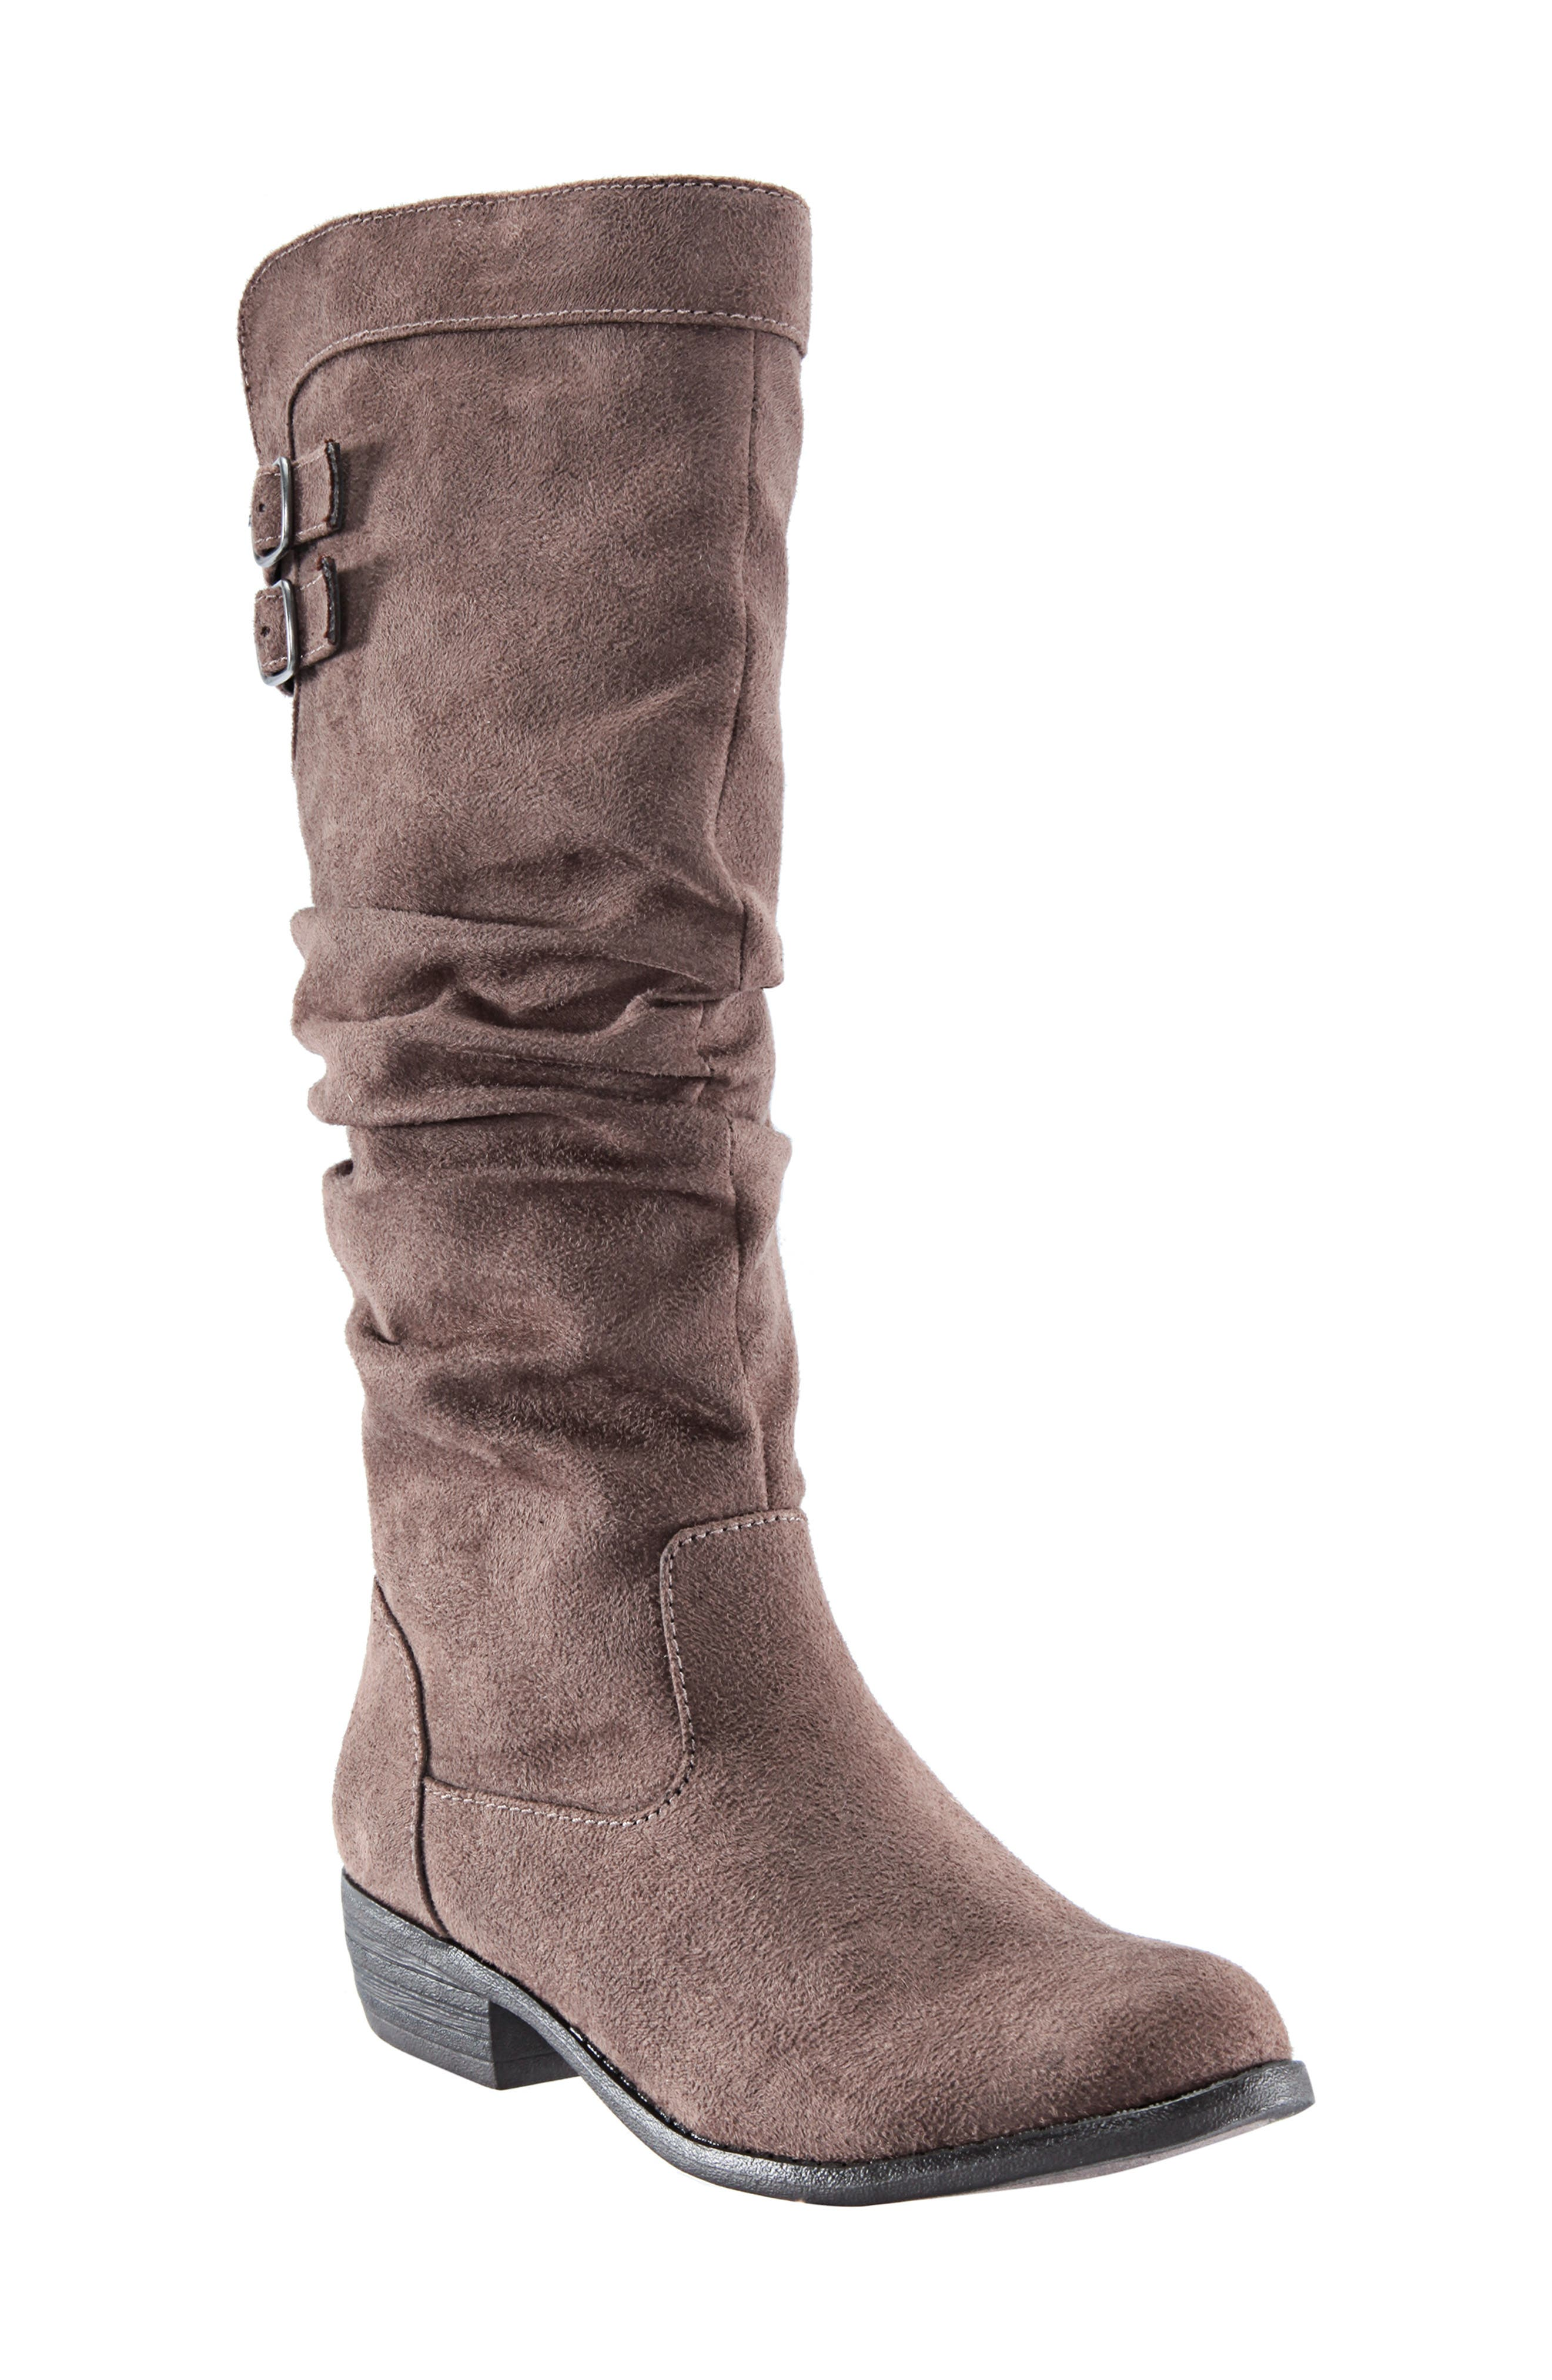 Gilda Tall Slouchy Boot,                             Main thumbnail 1, color,                             Taupe Burnished Micro Suede